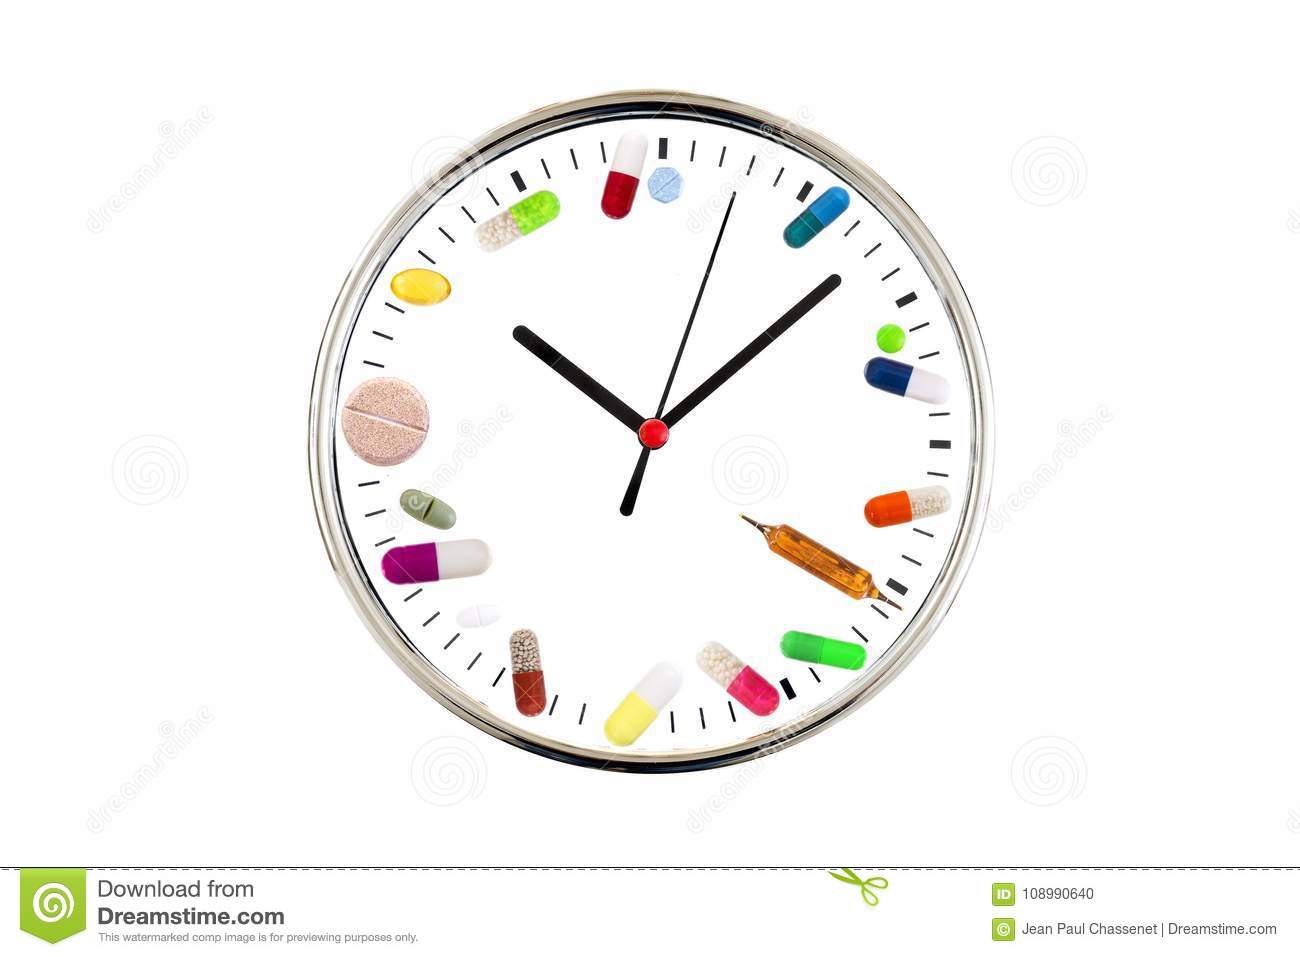 Concept Of Taking On Time Medication   Analog Clock With A Dial Made